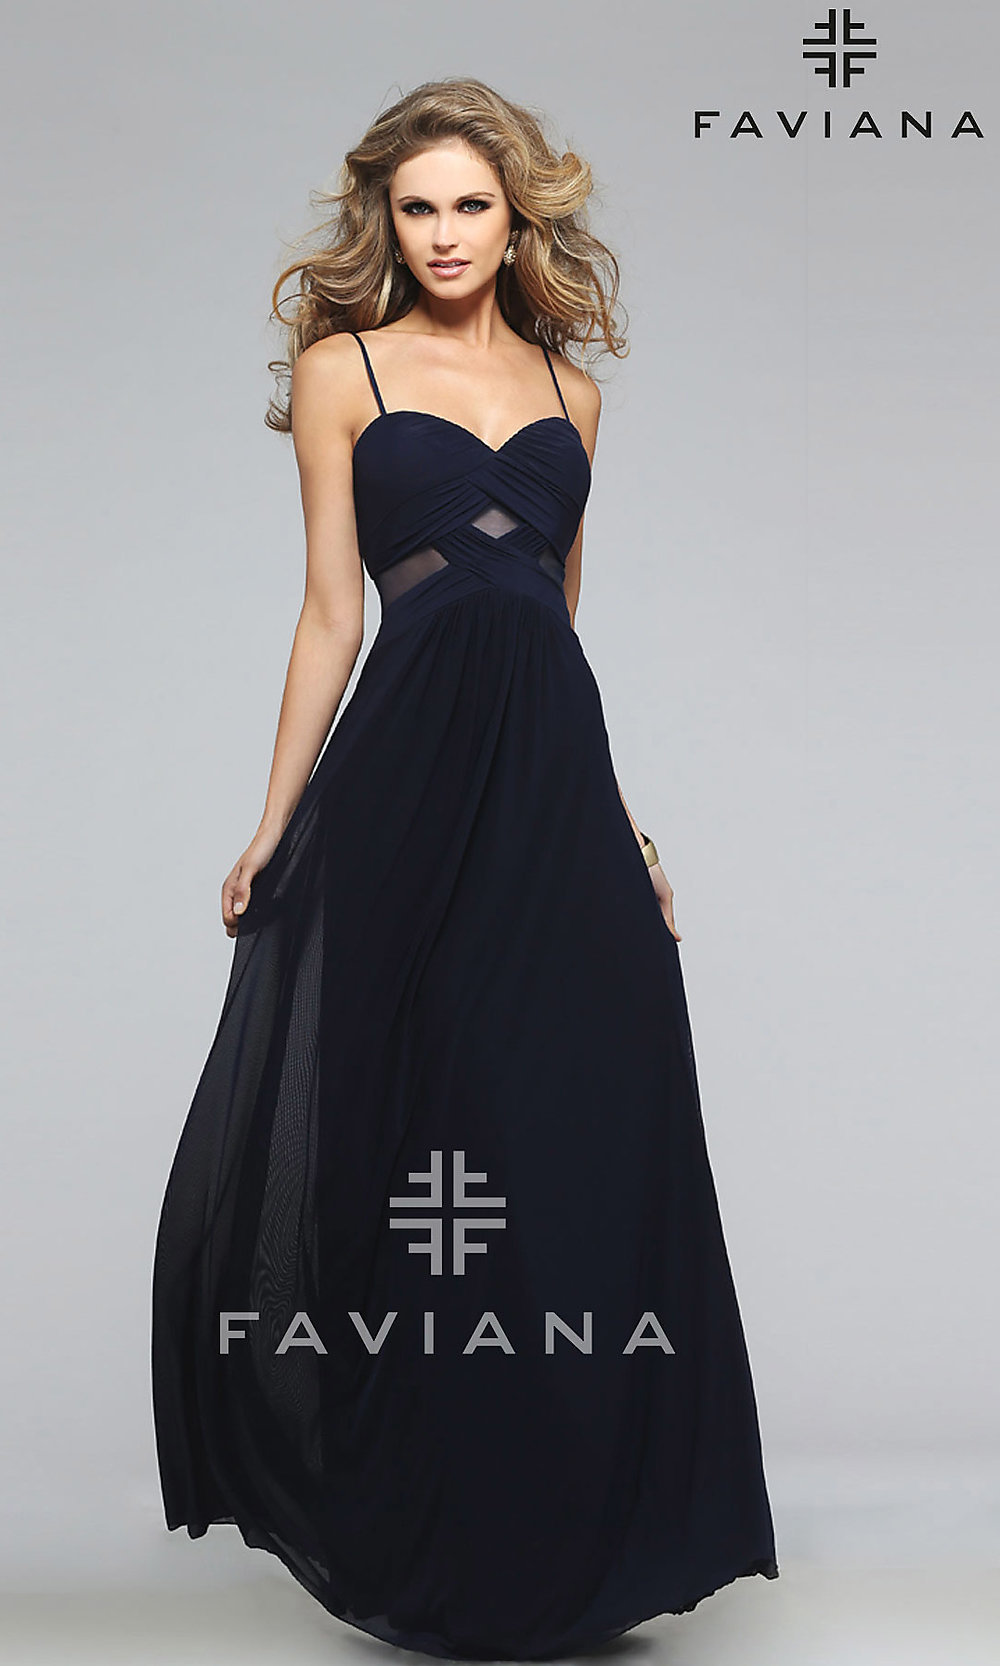 Faviana Prom Dresses On Sale